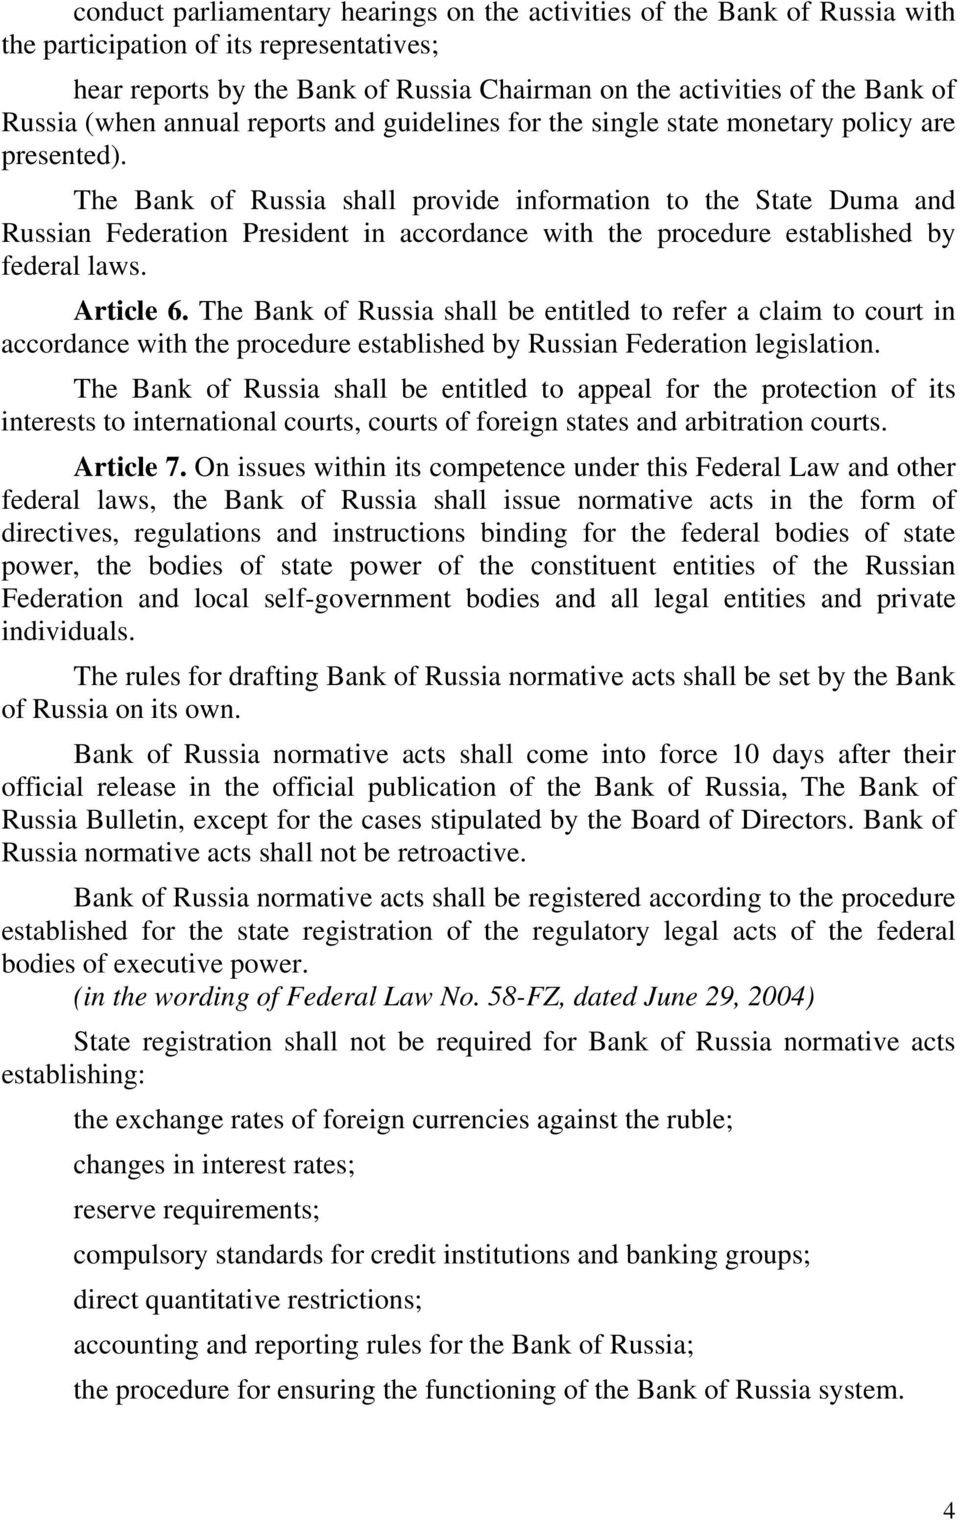 The Bank of Russia shall provide information to the State Duma and Russian Federation President in accordance with the procedure established by federal laws. Article 6.